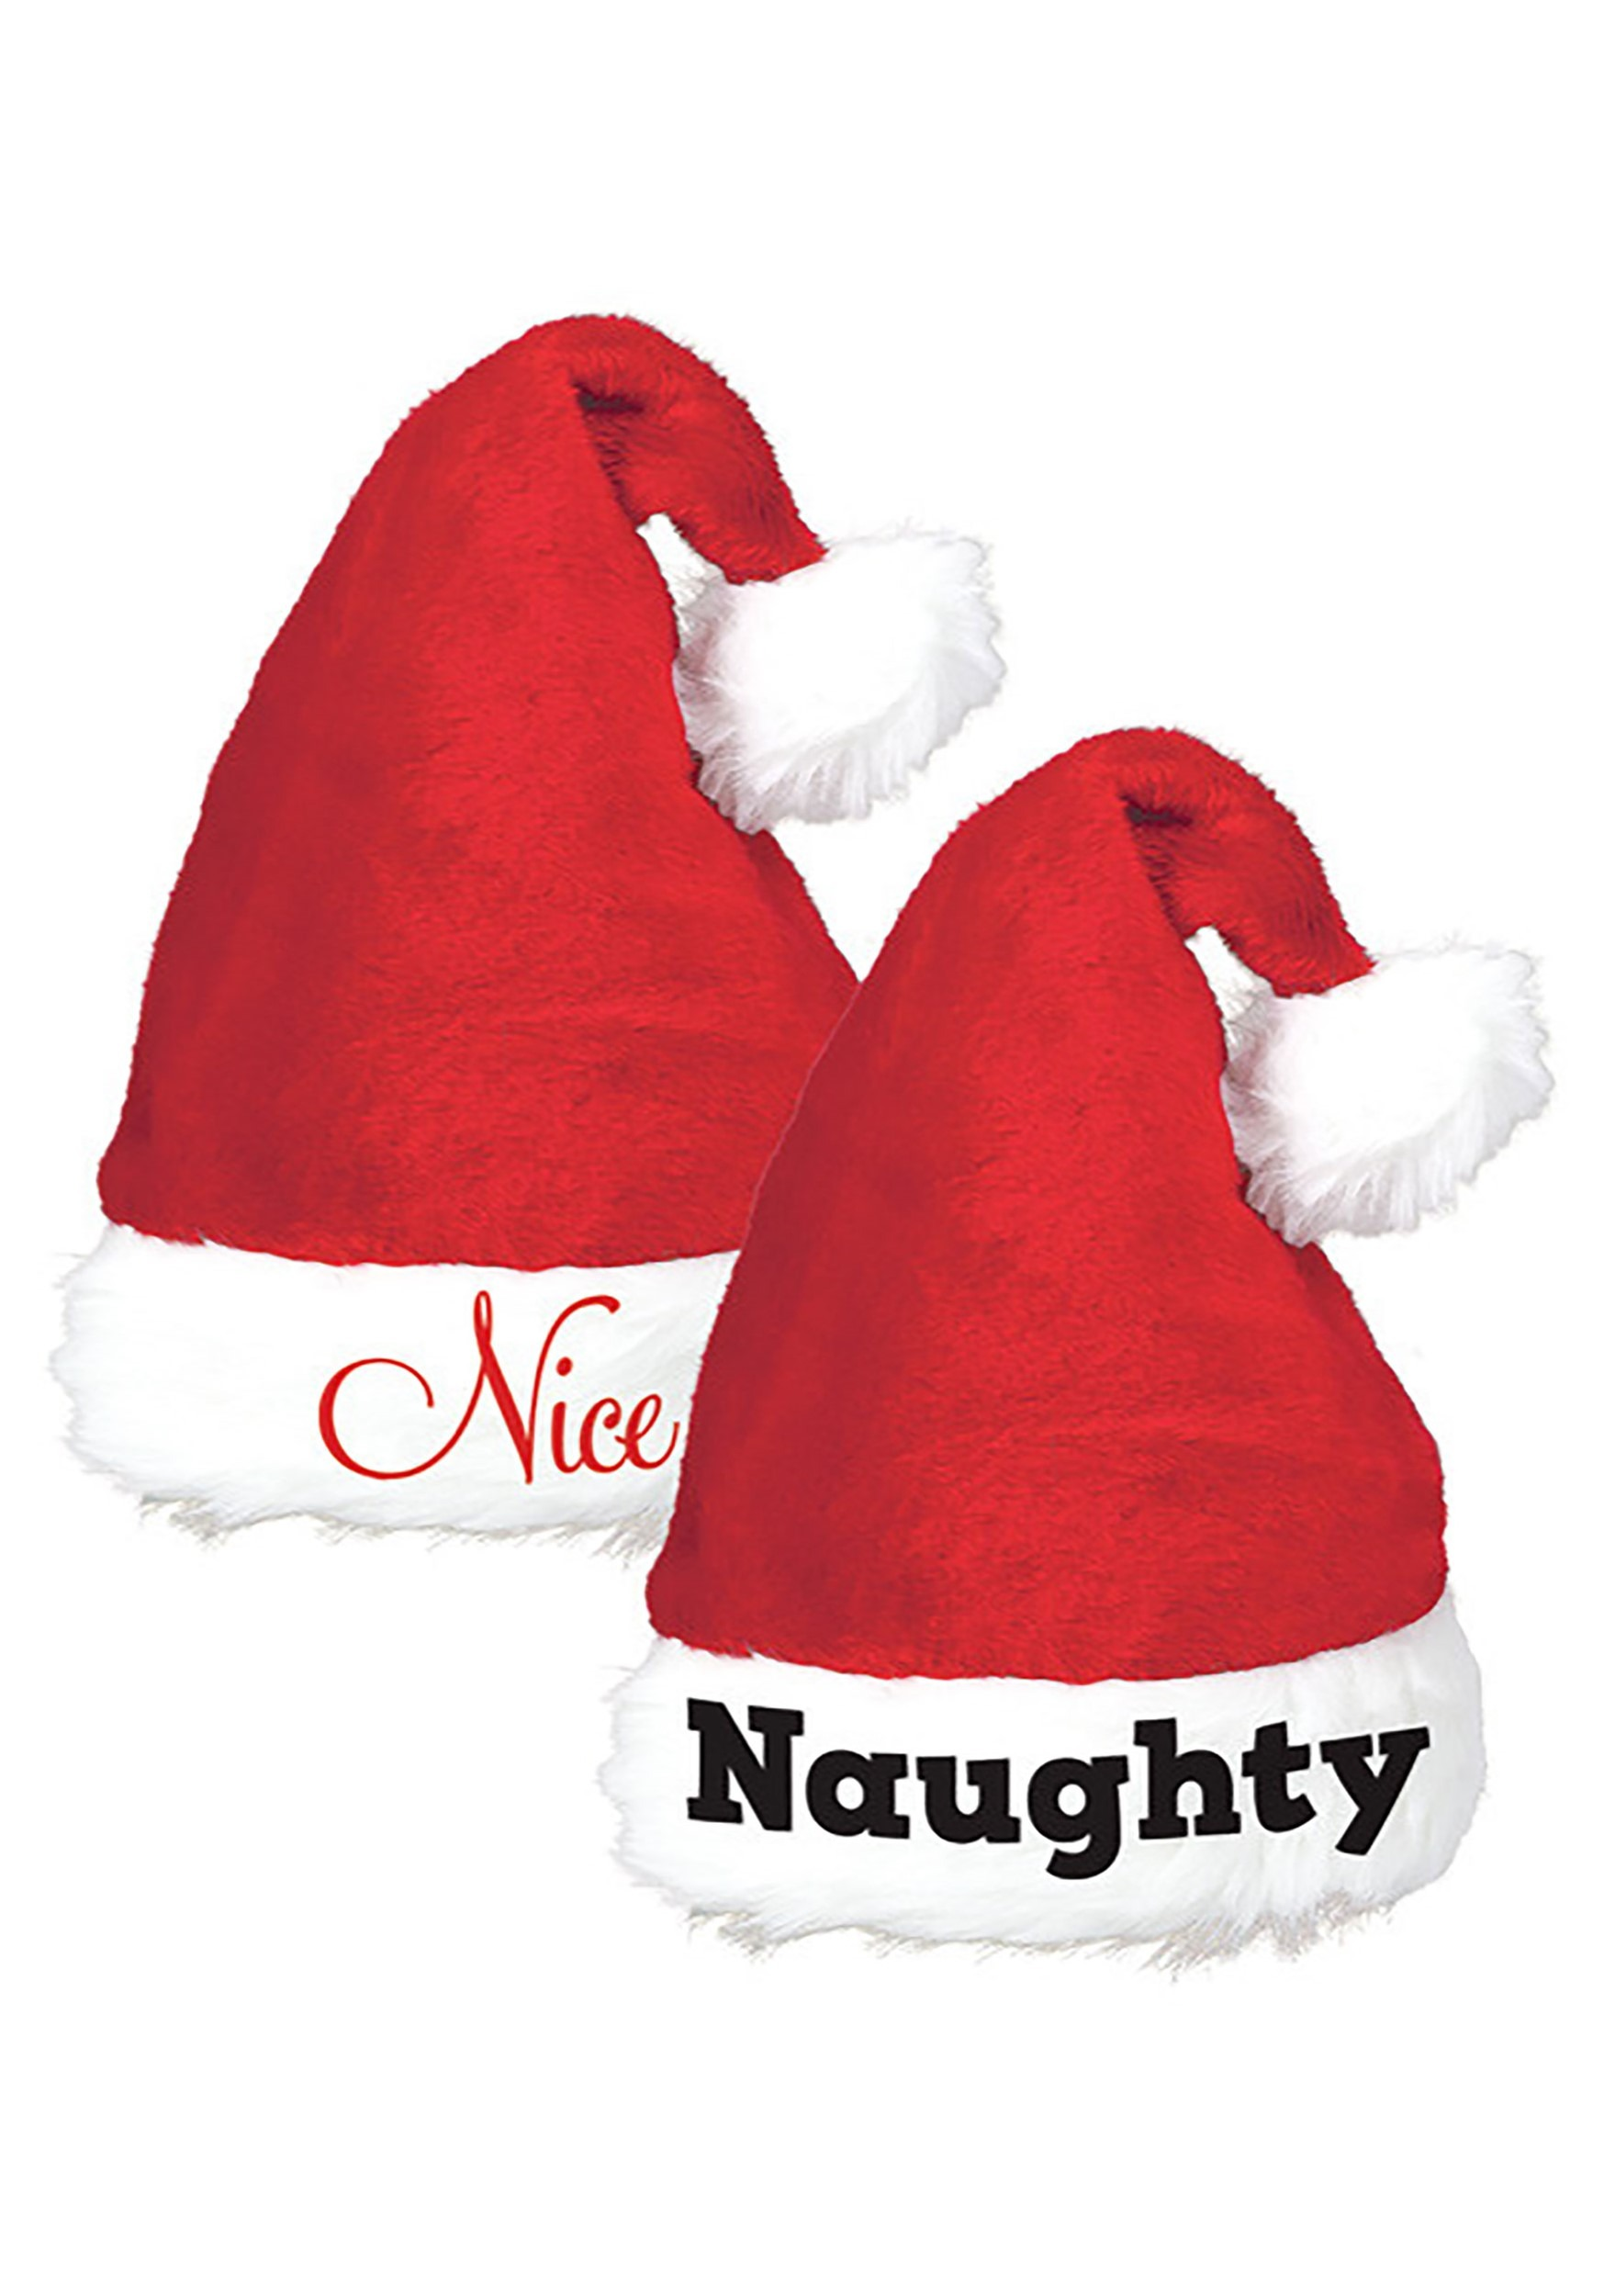 Set_of_Two-_Naughty_and_Nice_Santa_Hats